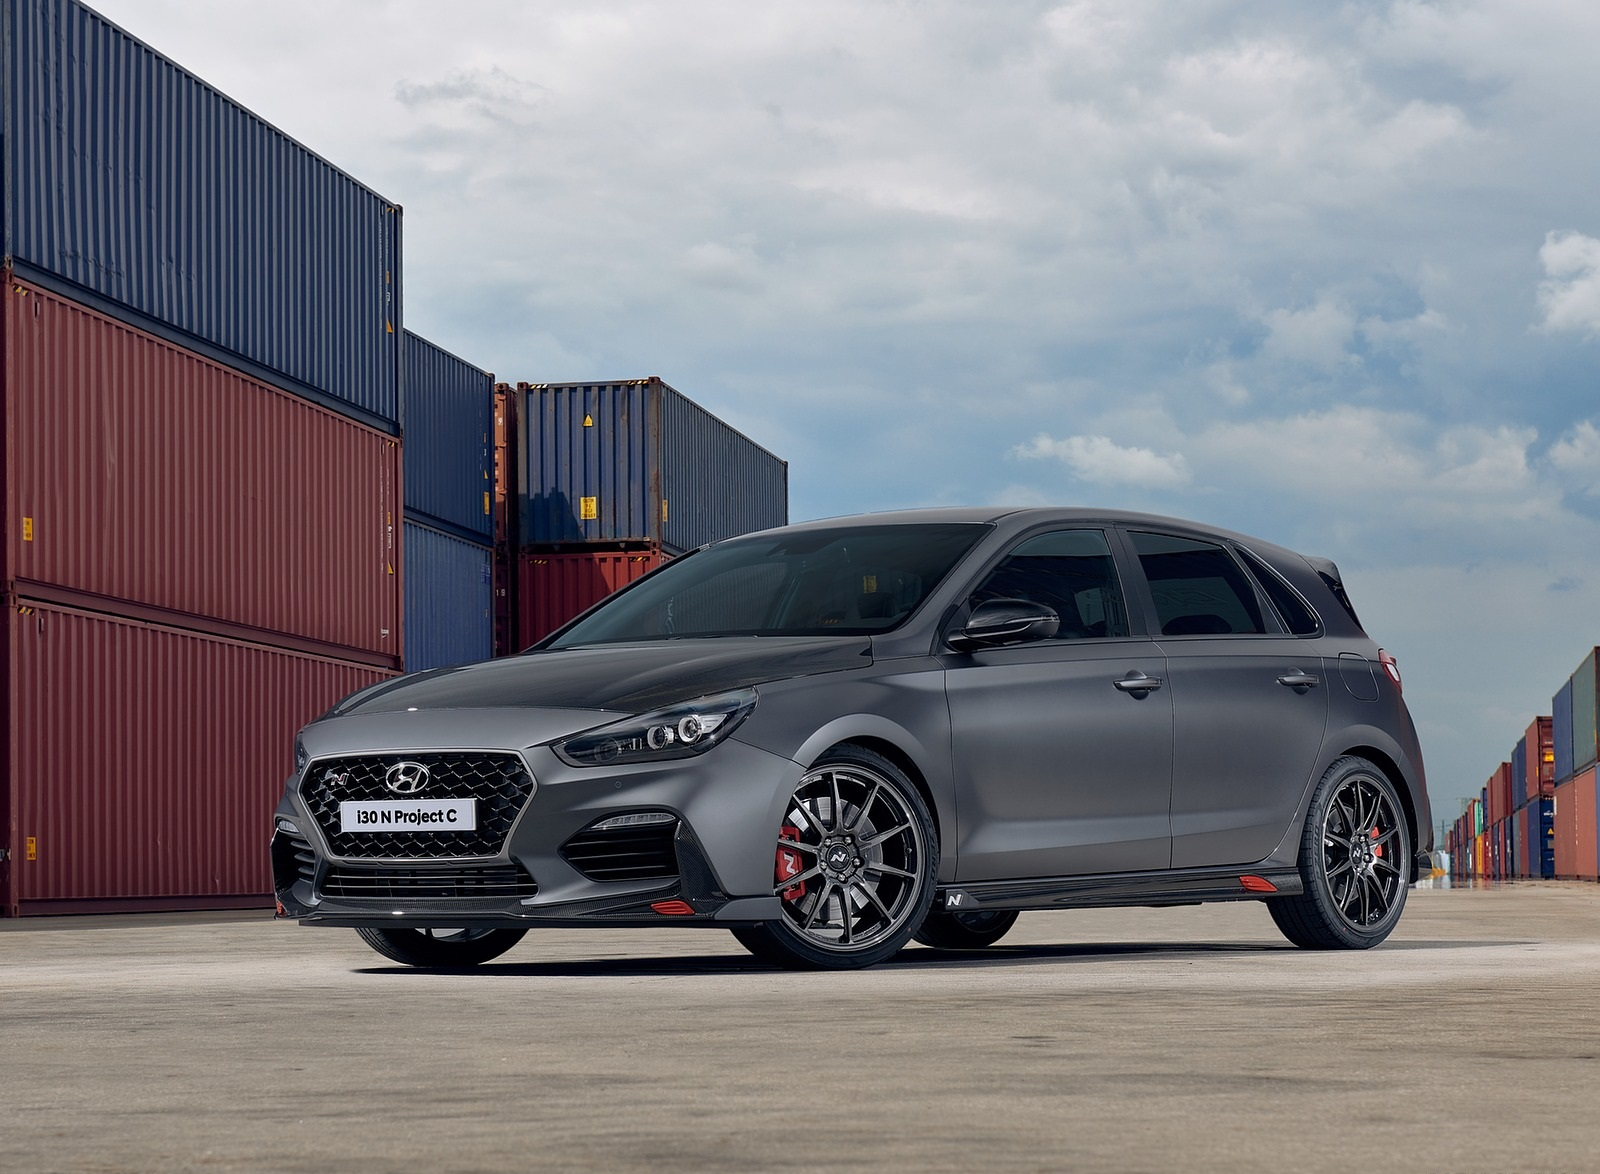 2020 Hyundai i30 N Project C Front Three-Quarter Wallpapers (12)